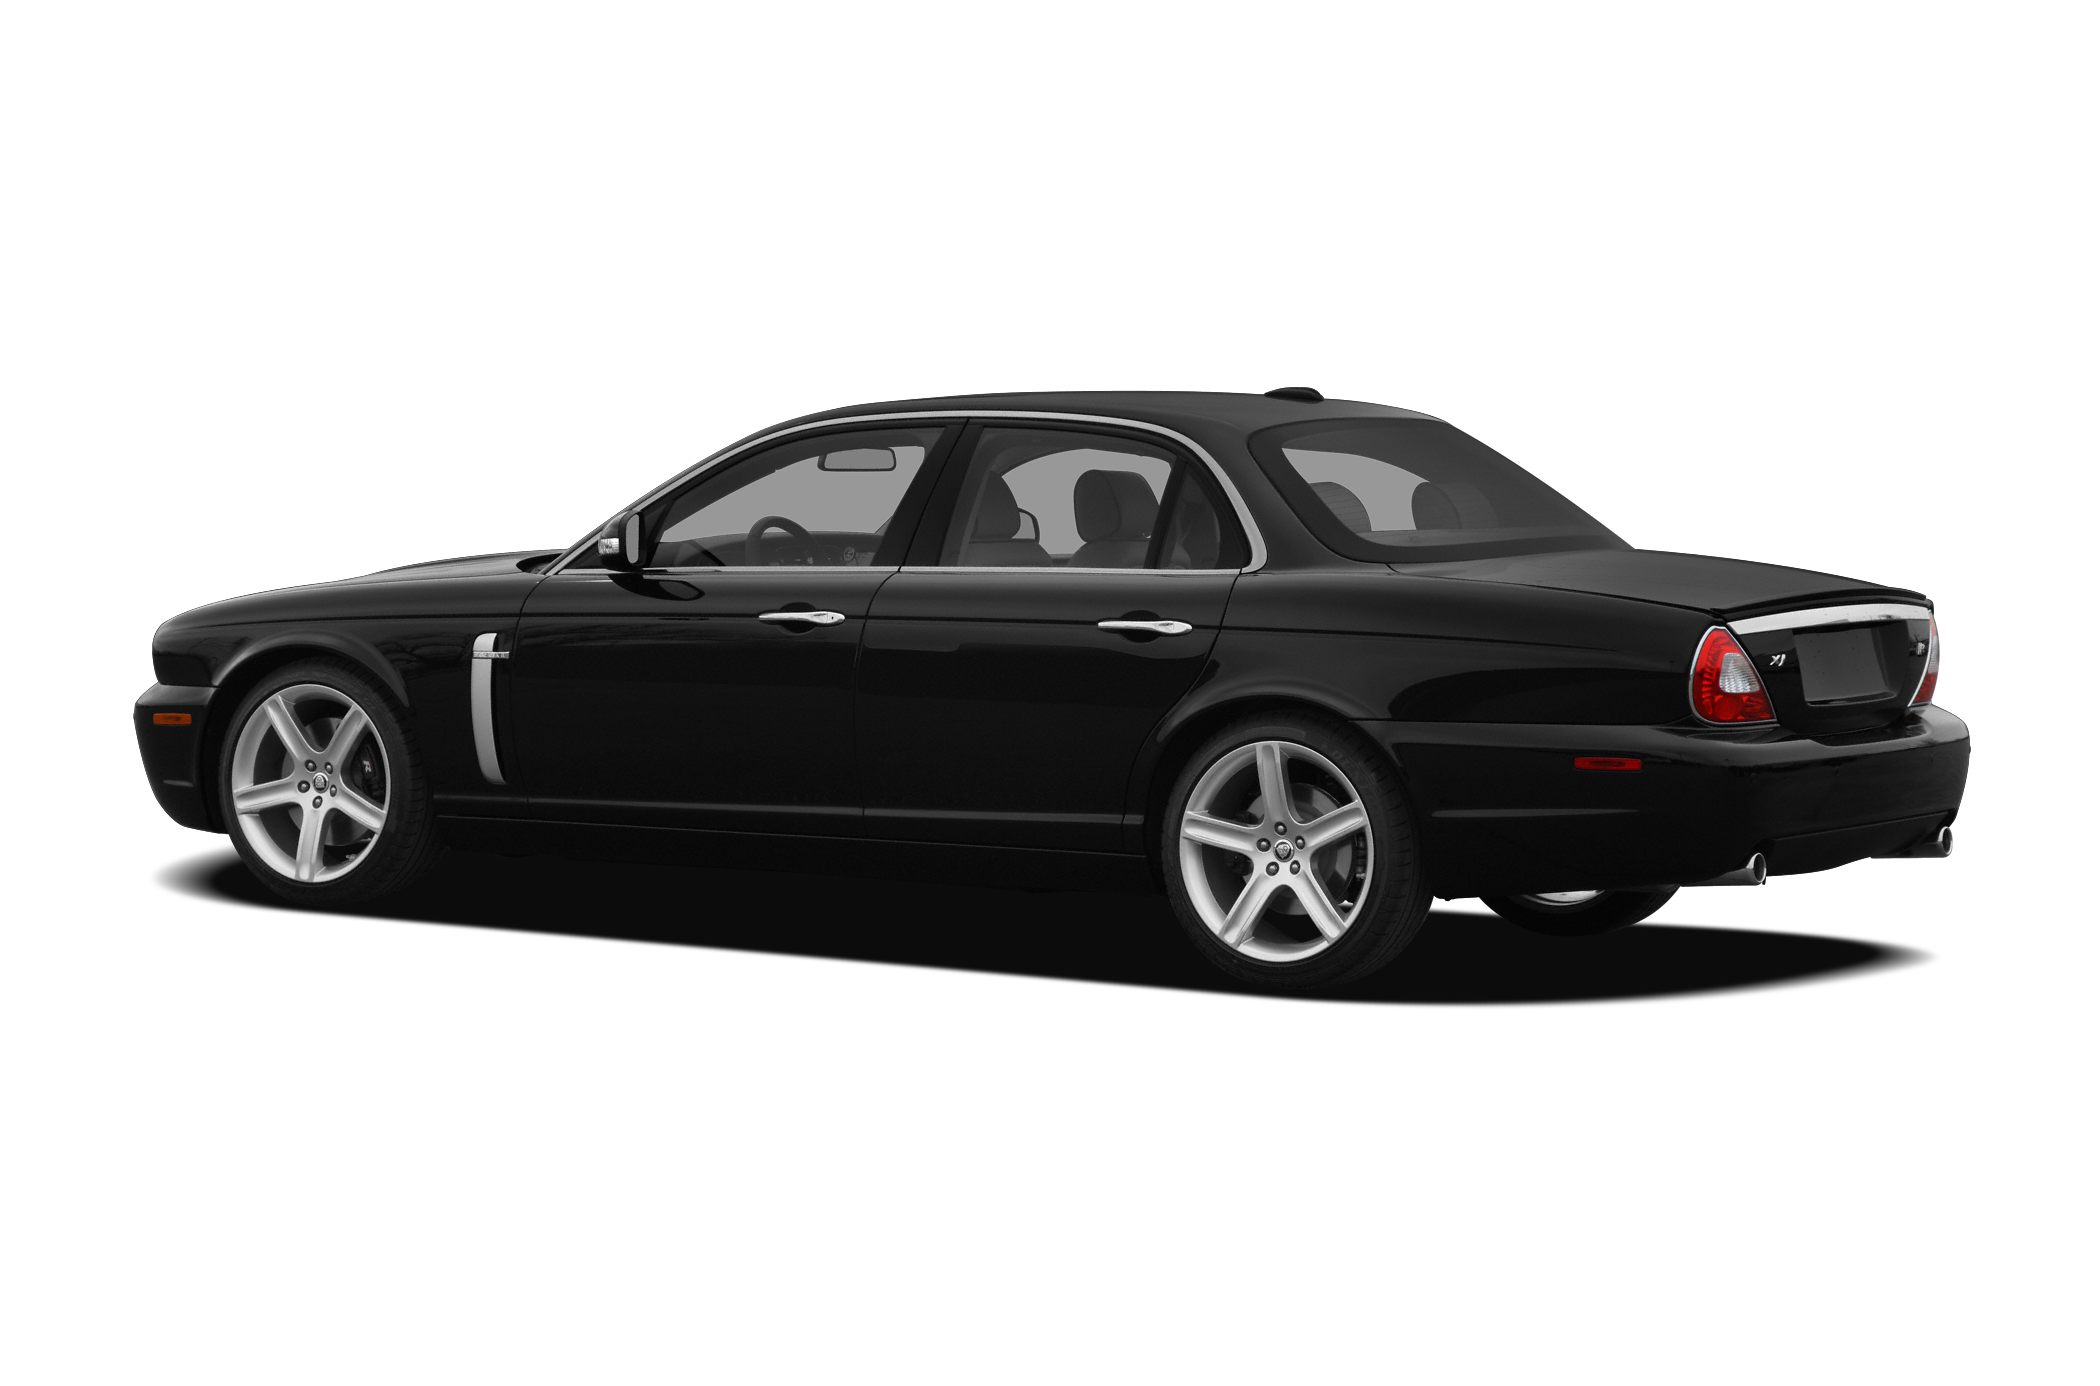 Car Seat Recall >> Jaguar XJ8 Sedan Models, Price, Specs, Reviews | Cars.com